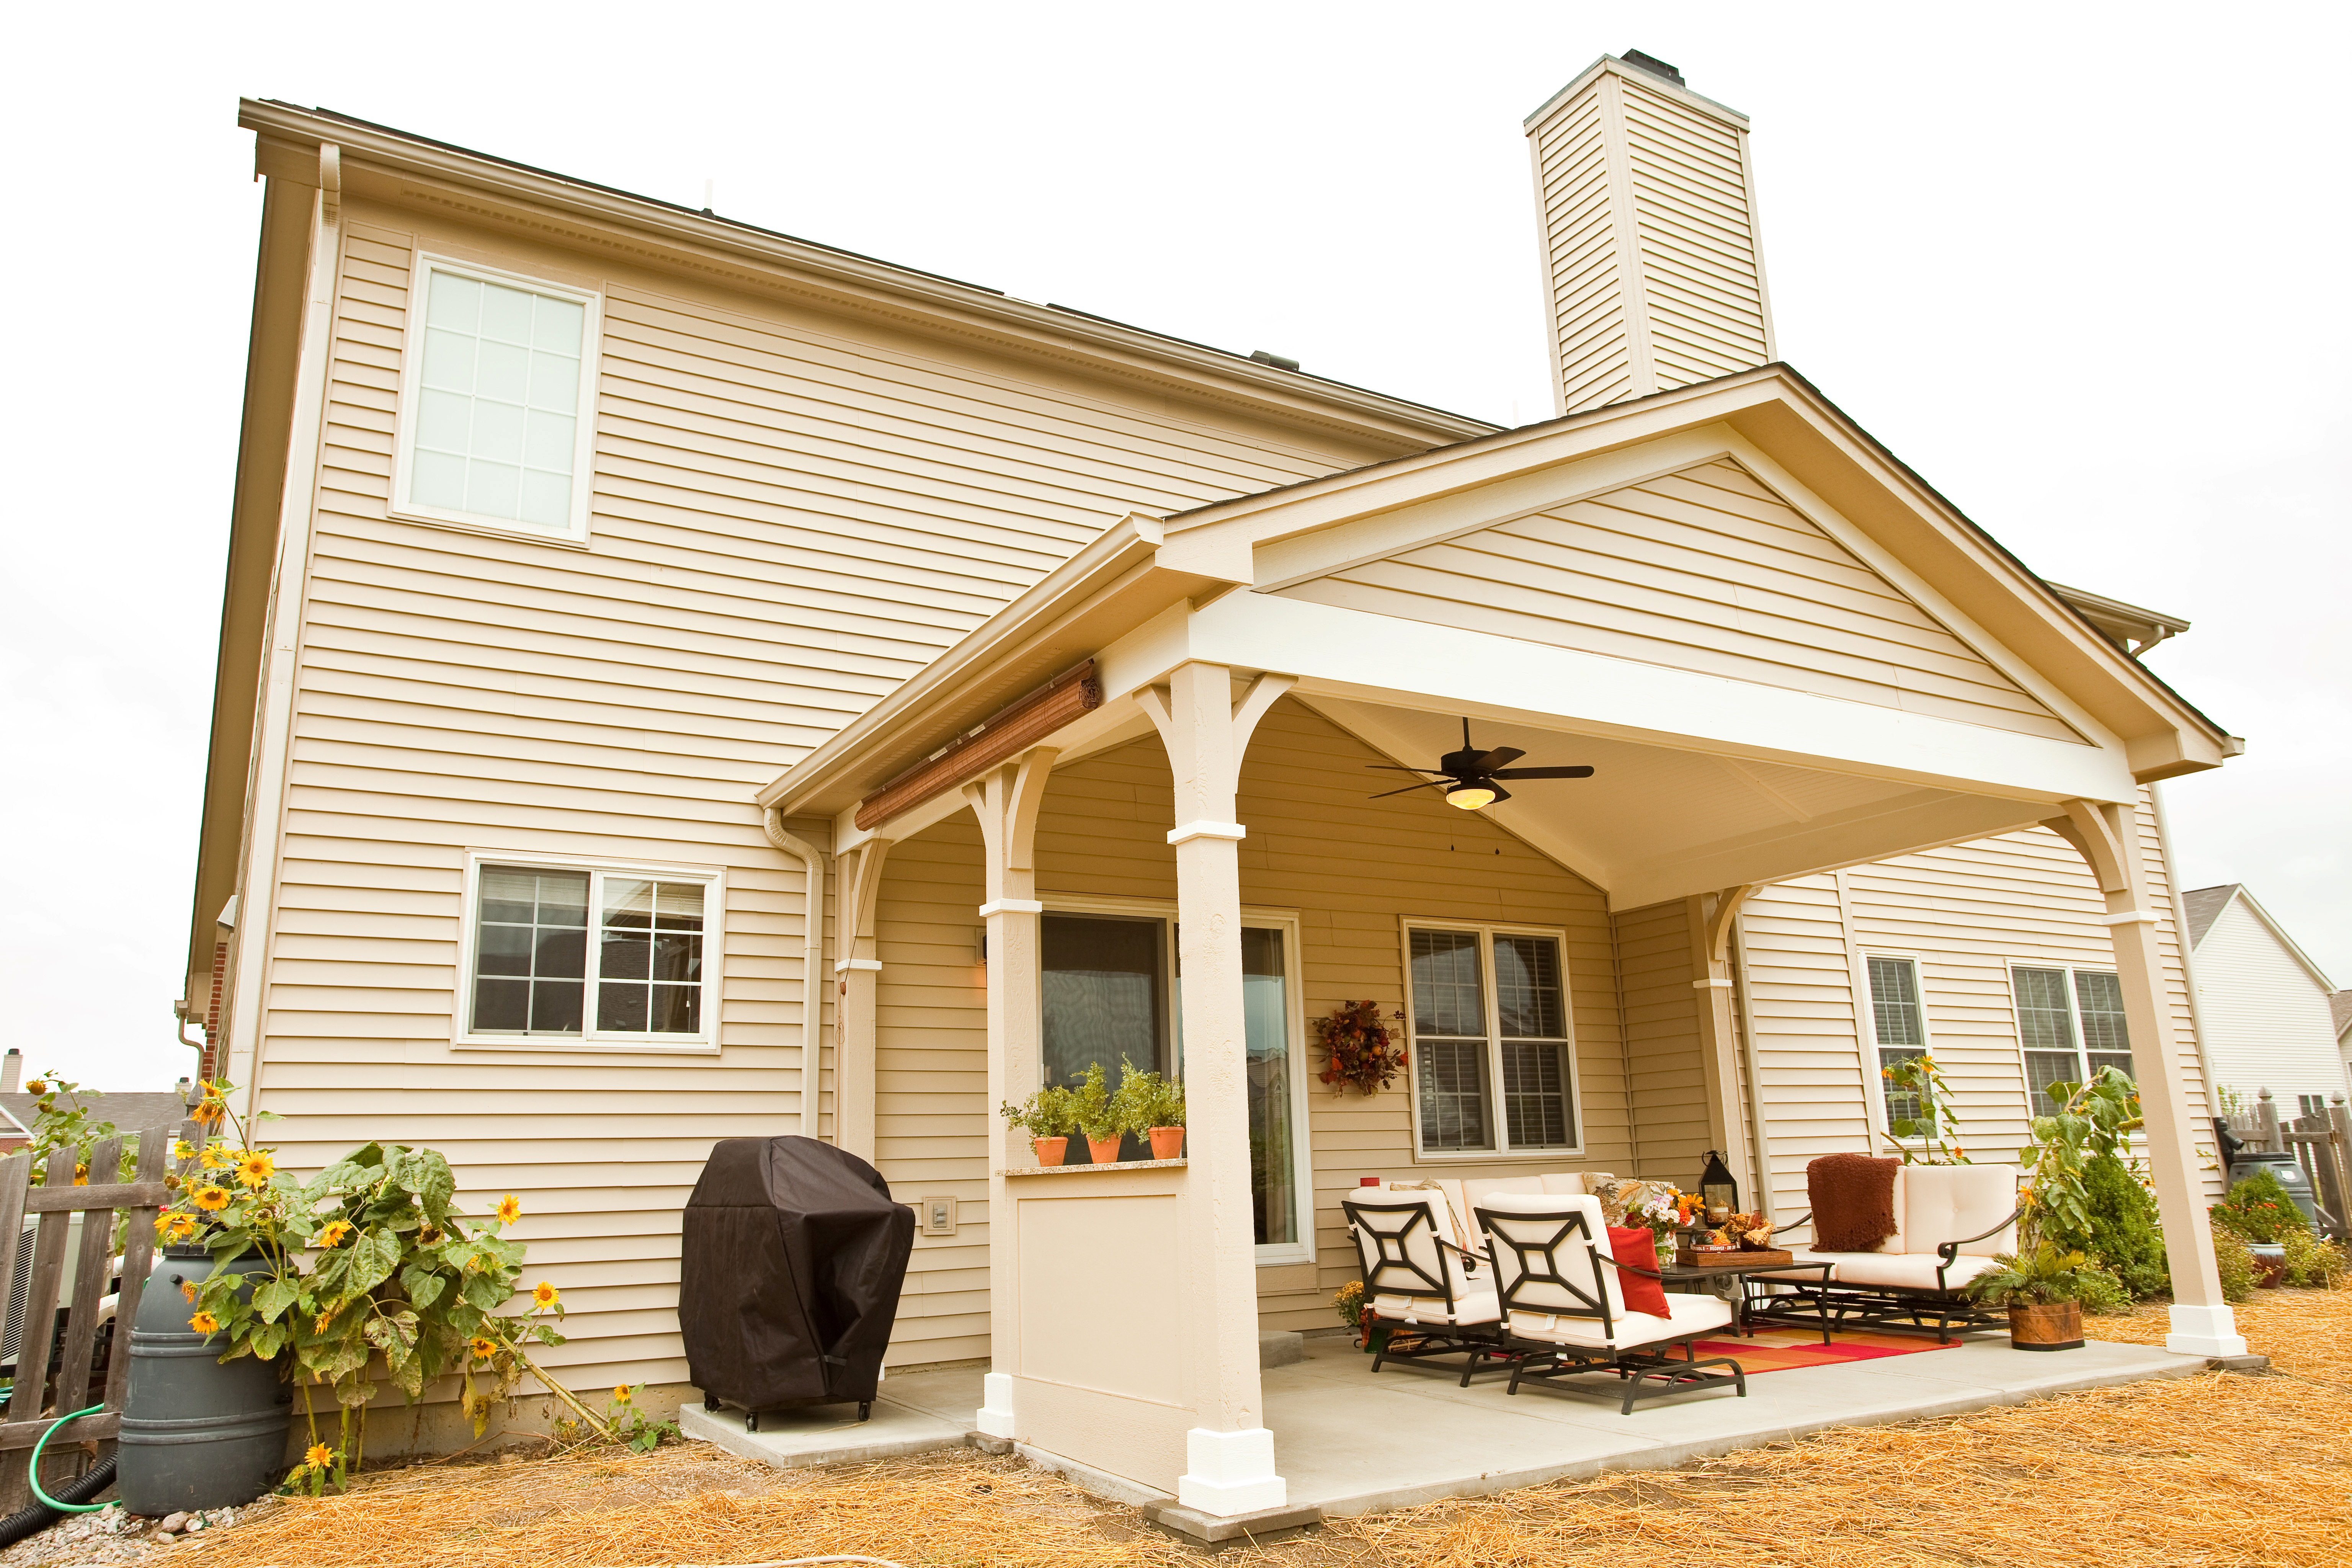 Porch Vs Deck Which Is The More Befitting For Your Home: Column: Covered Porch Gives Family Their Backyard Back